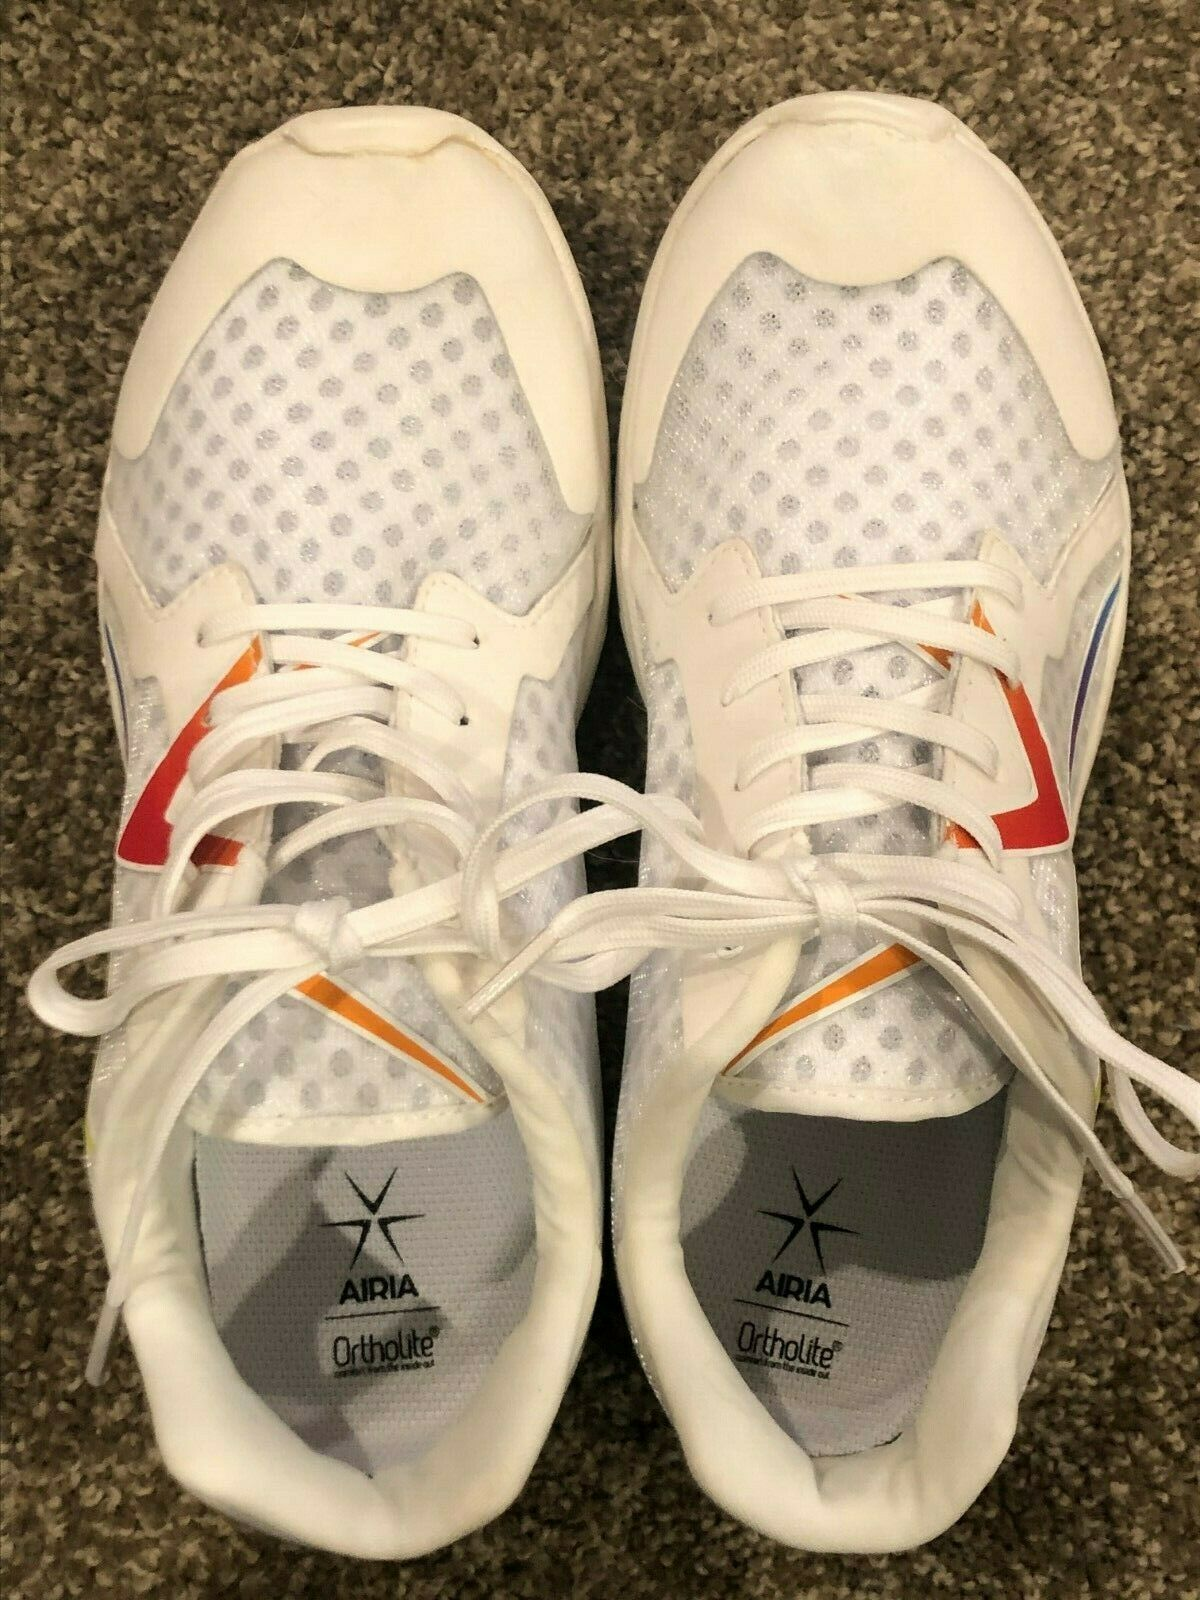 AIRIA One Women's White Running shoes Sneakers Size US 9 DISCONTINUED